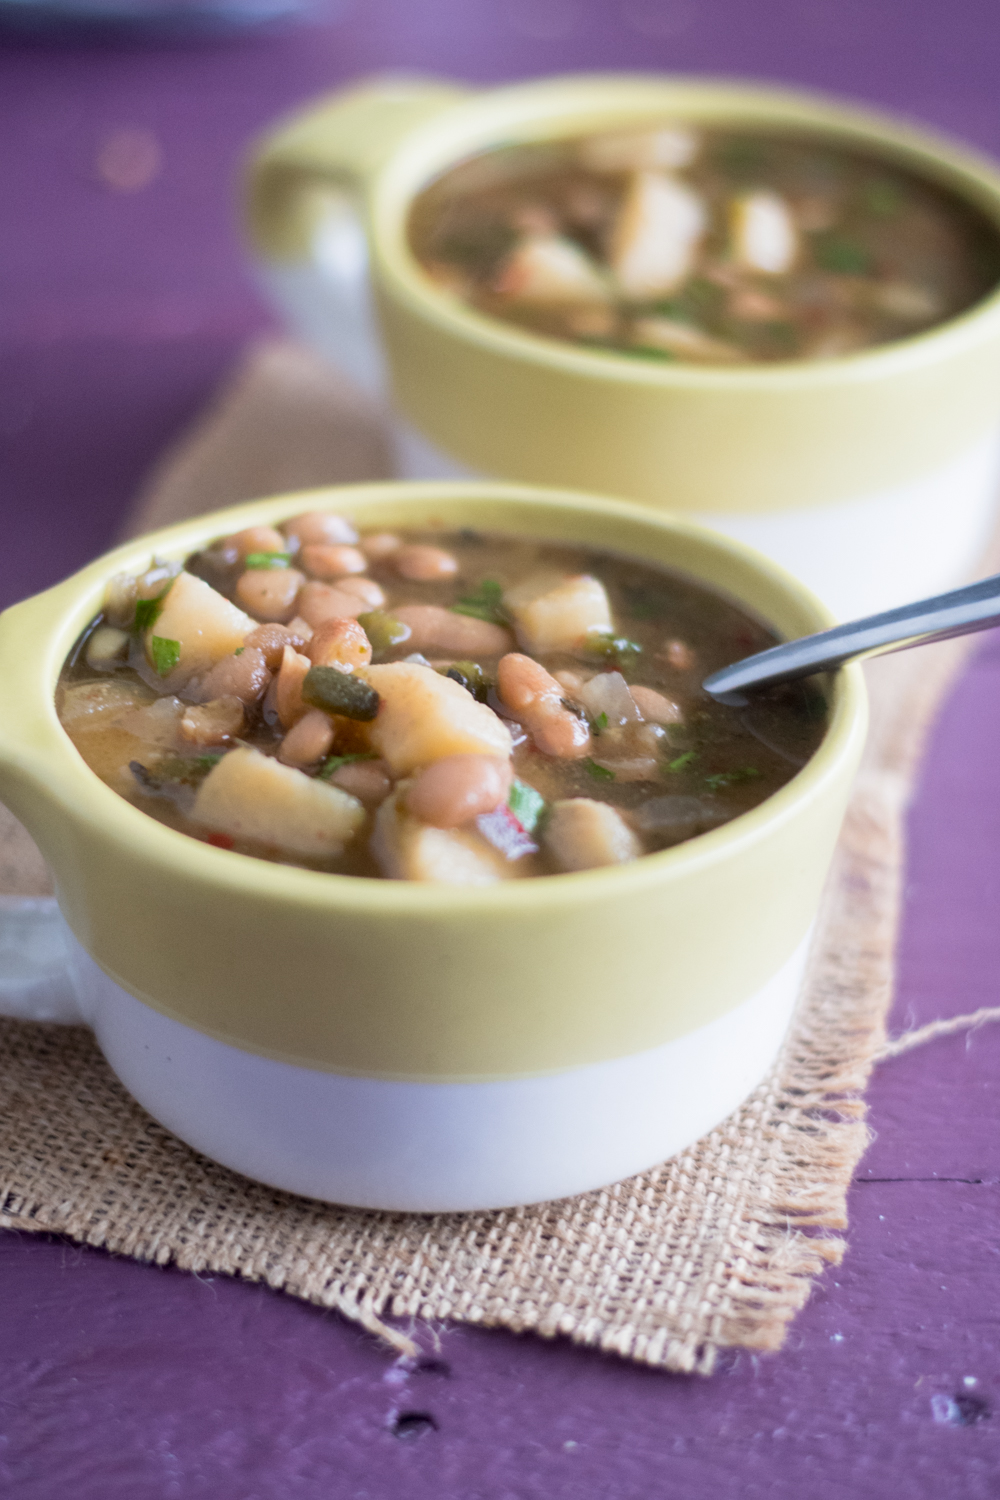 Slow Cooker Mexican Bean and Potato Soup is layered with flavor from 3 different chiles. Great for a cold night!